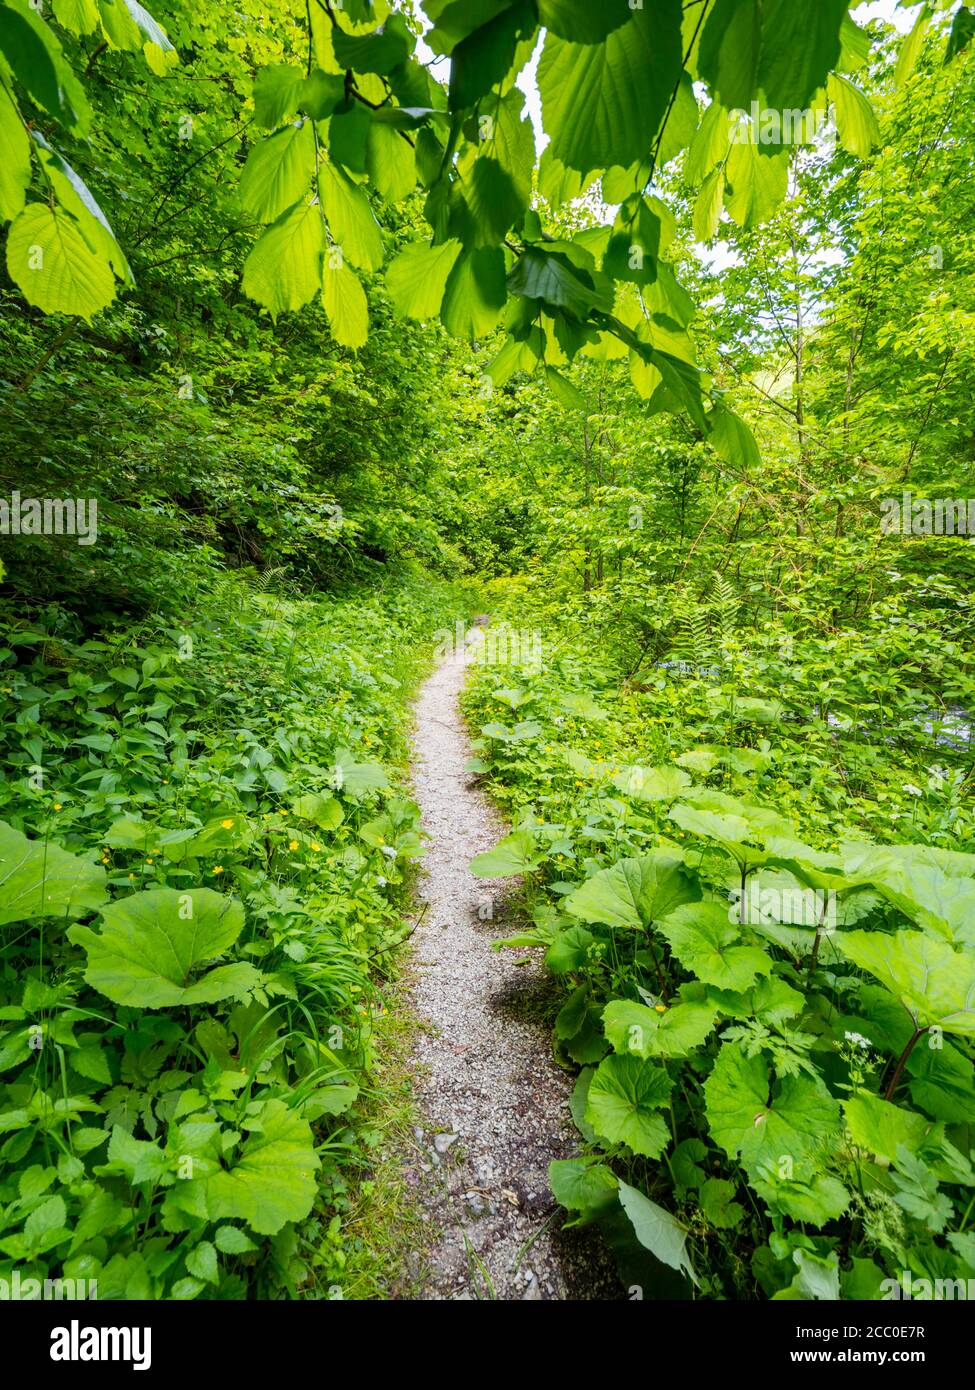 Green forest trail narrow foottrail pathway through dense Green vegetation trees woodland in country-side countryside without people wop nobody Stock Photo